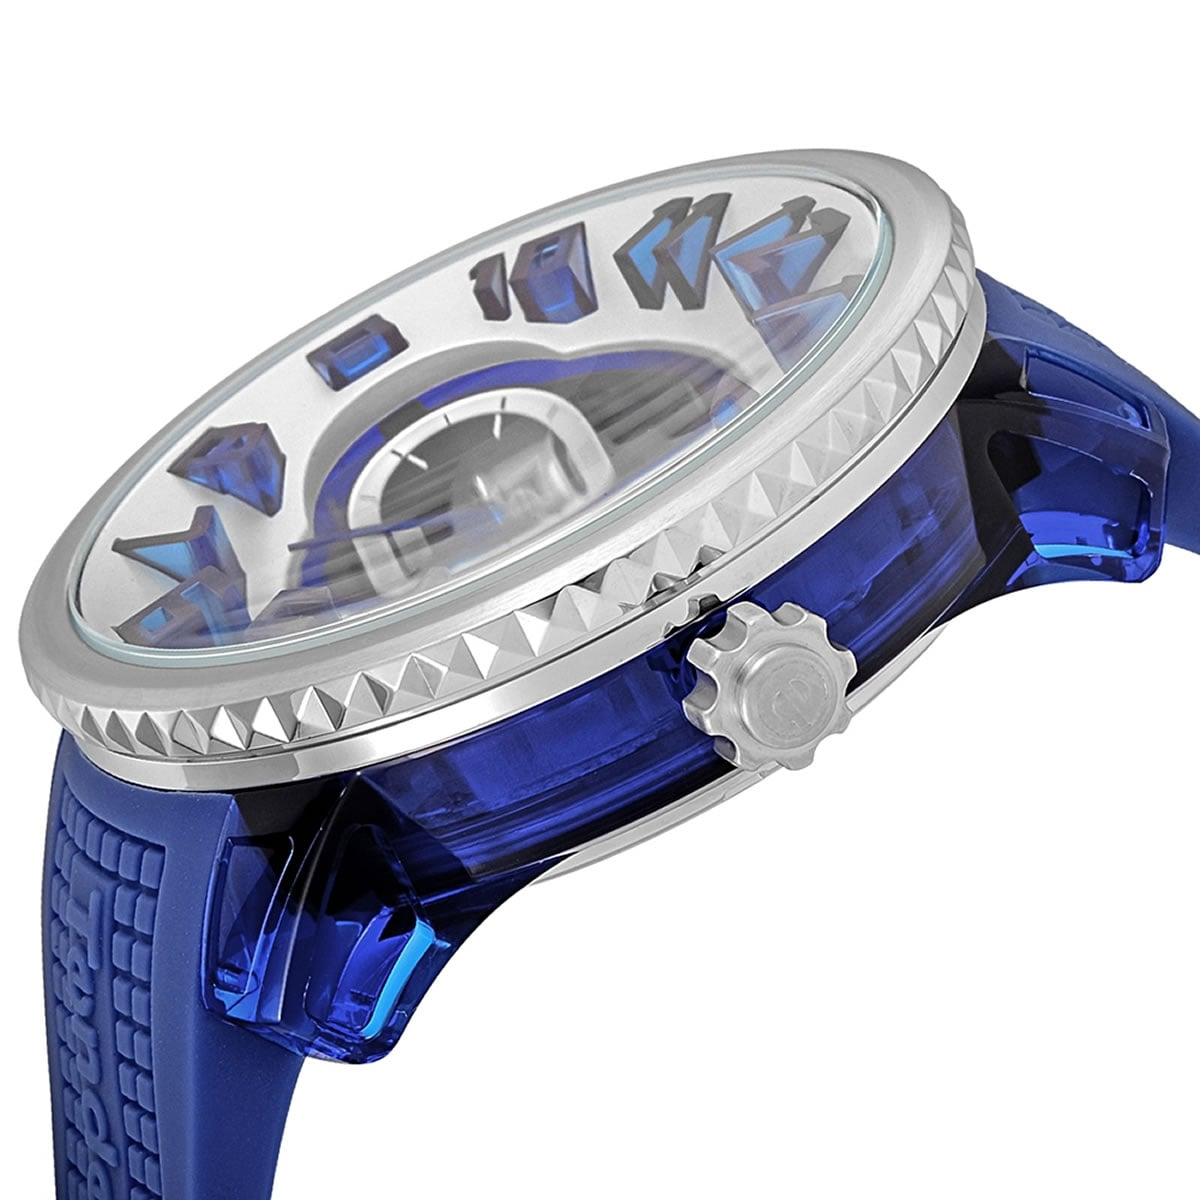 tendence ty561003 ケースサイド